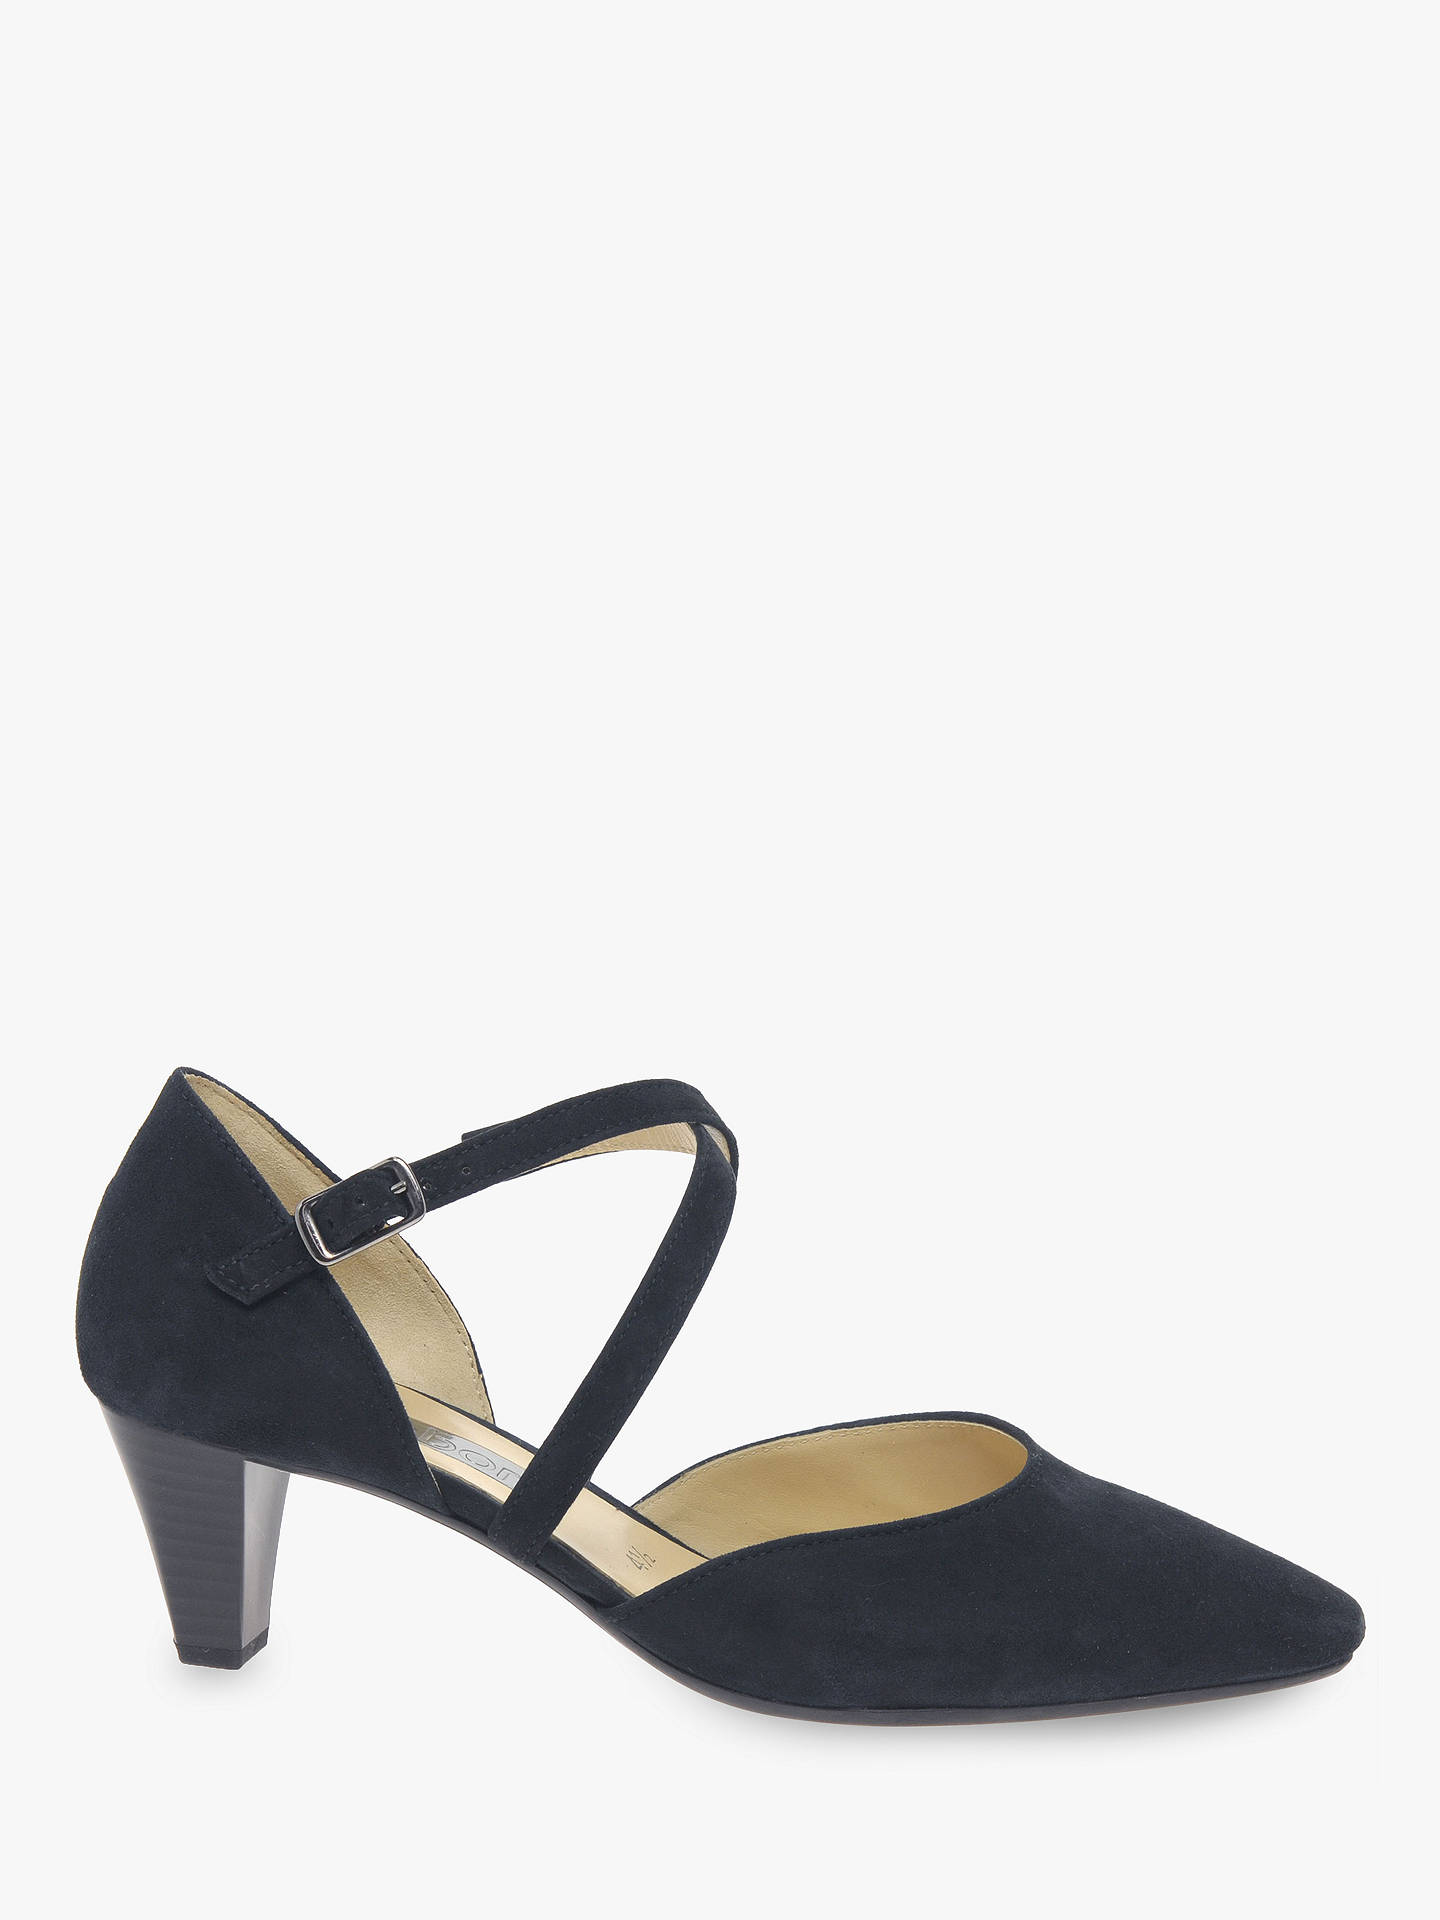 b8e9f3f718a Gabor Callow Cross Strap Block Heel Court Shoes, Pacific Suede